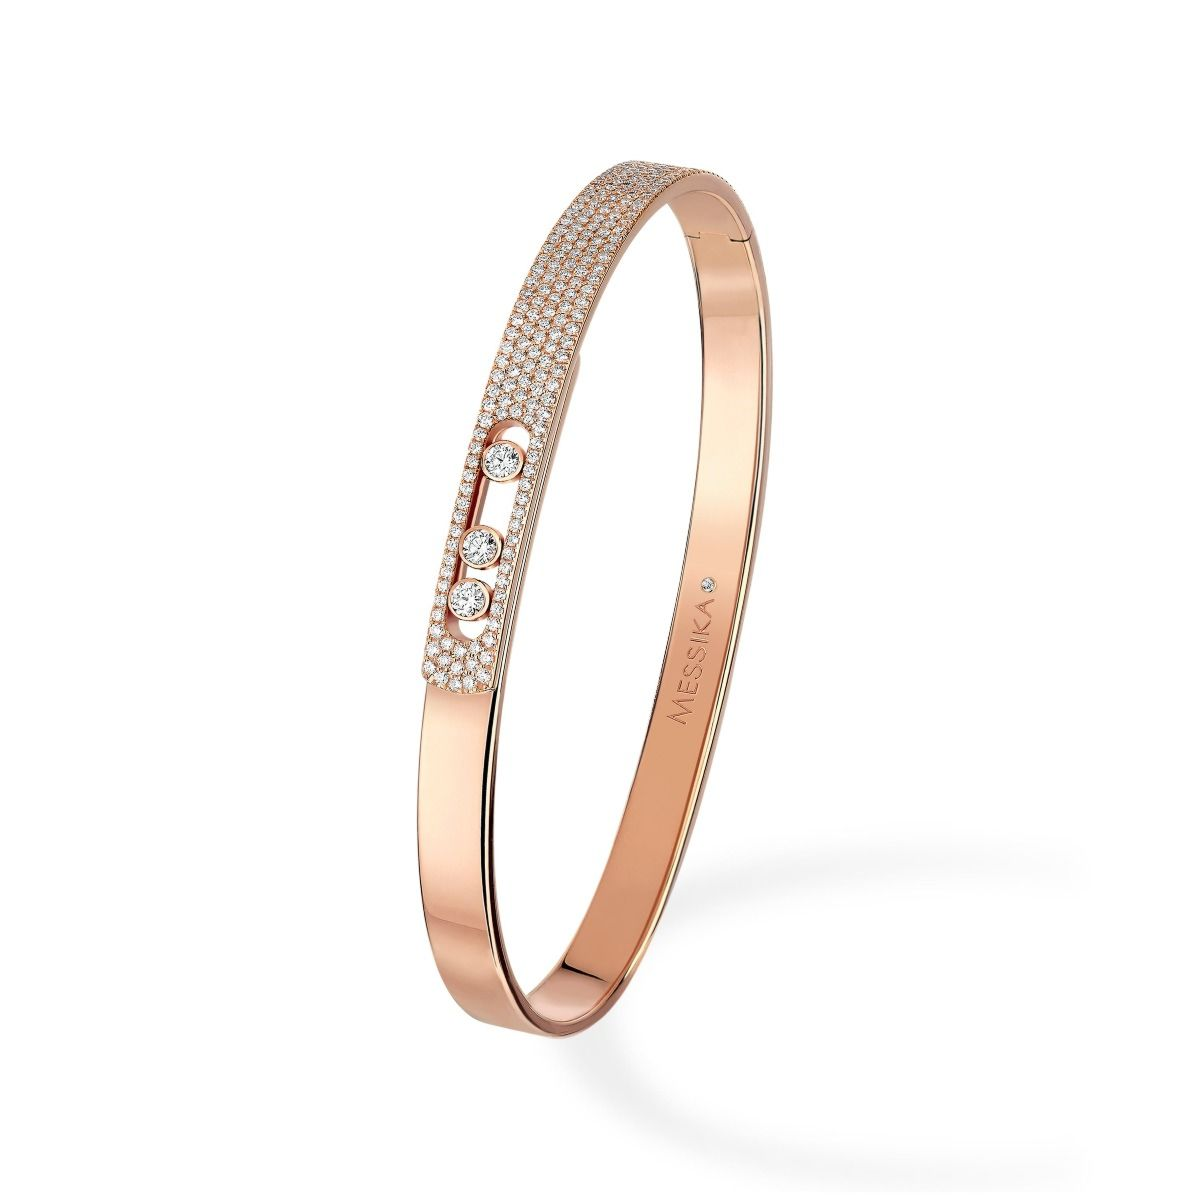 Move Noa Bangle PM Pavé BRACELET - PINK GOLD